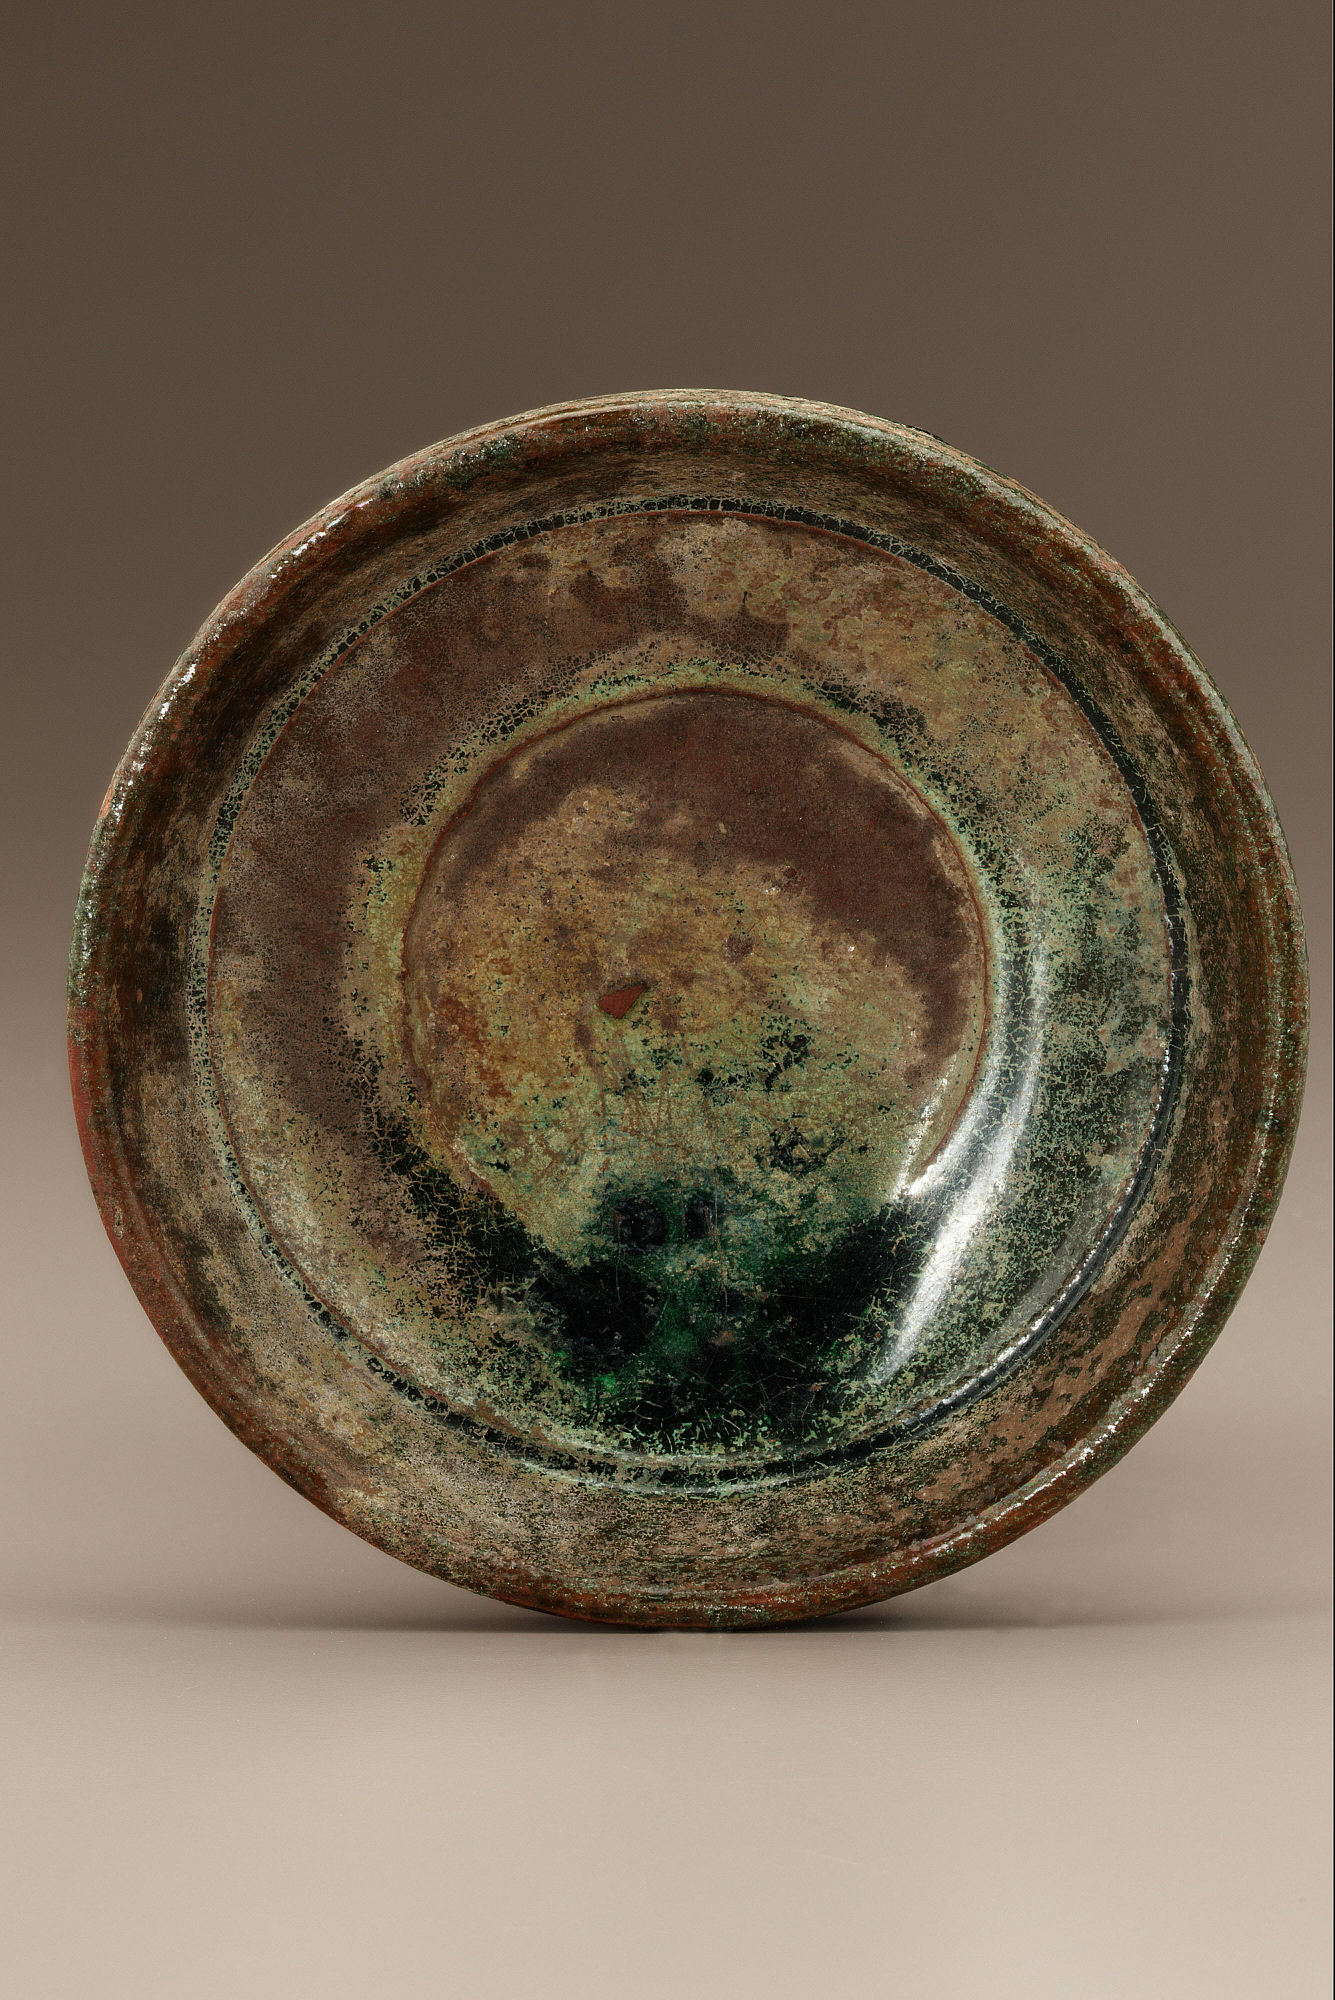 Tomb dish or lid